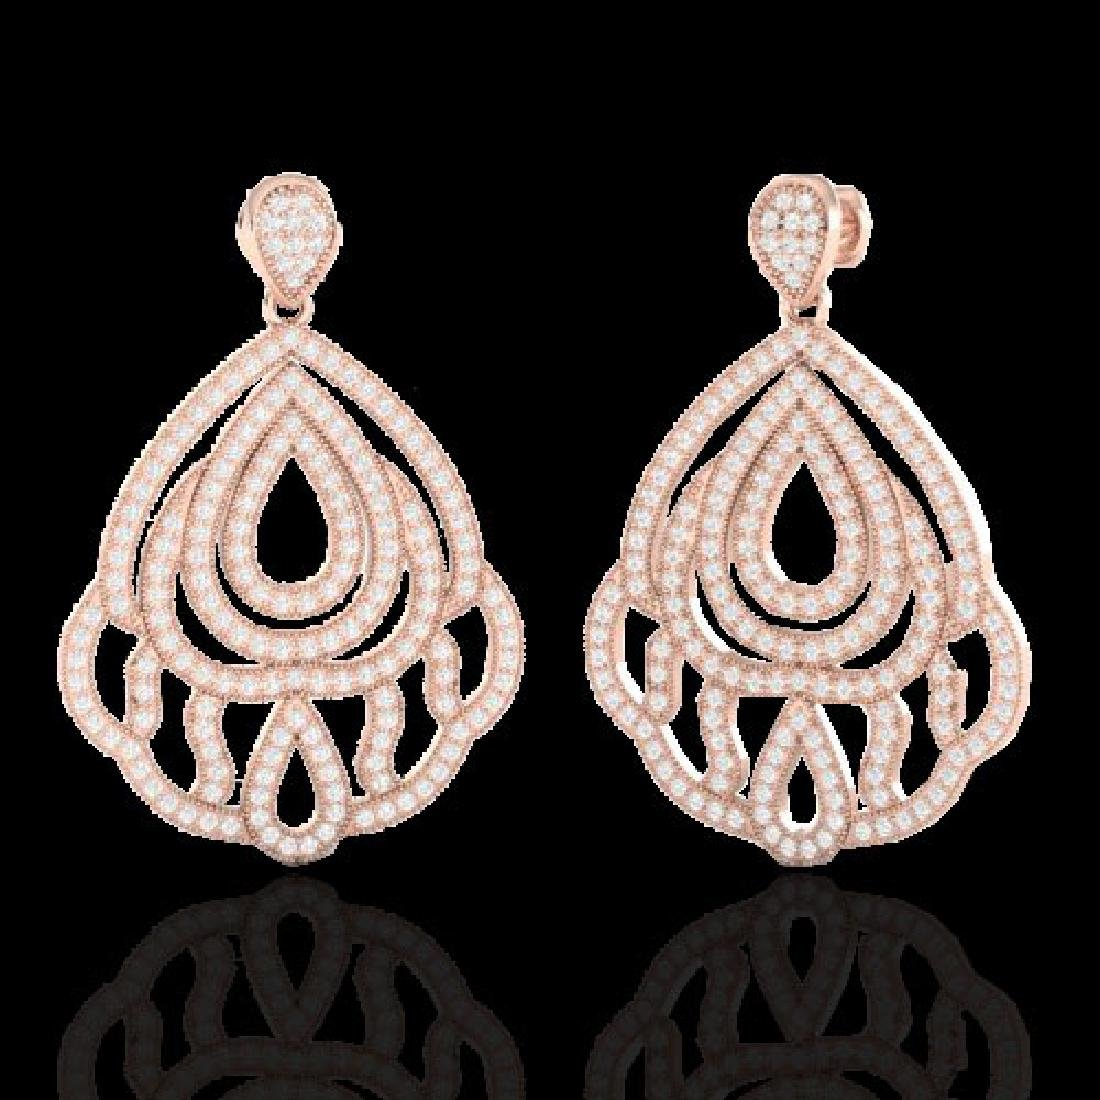 3 CTW Micro Pave VS/SI Diamond Earrings Designer 14K